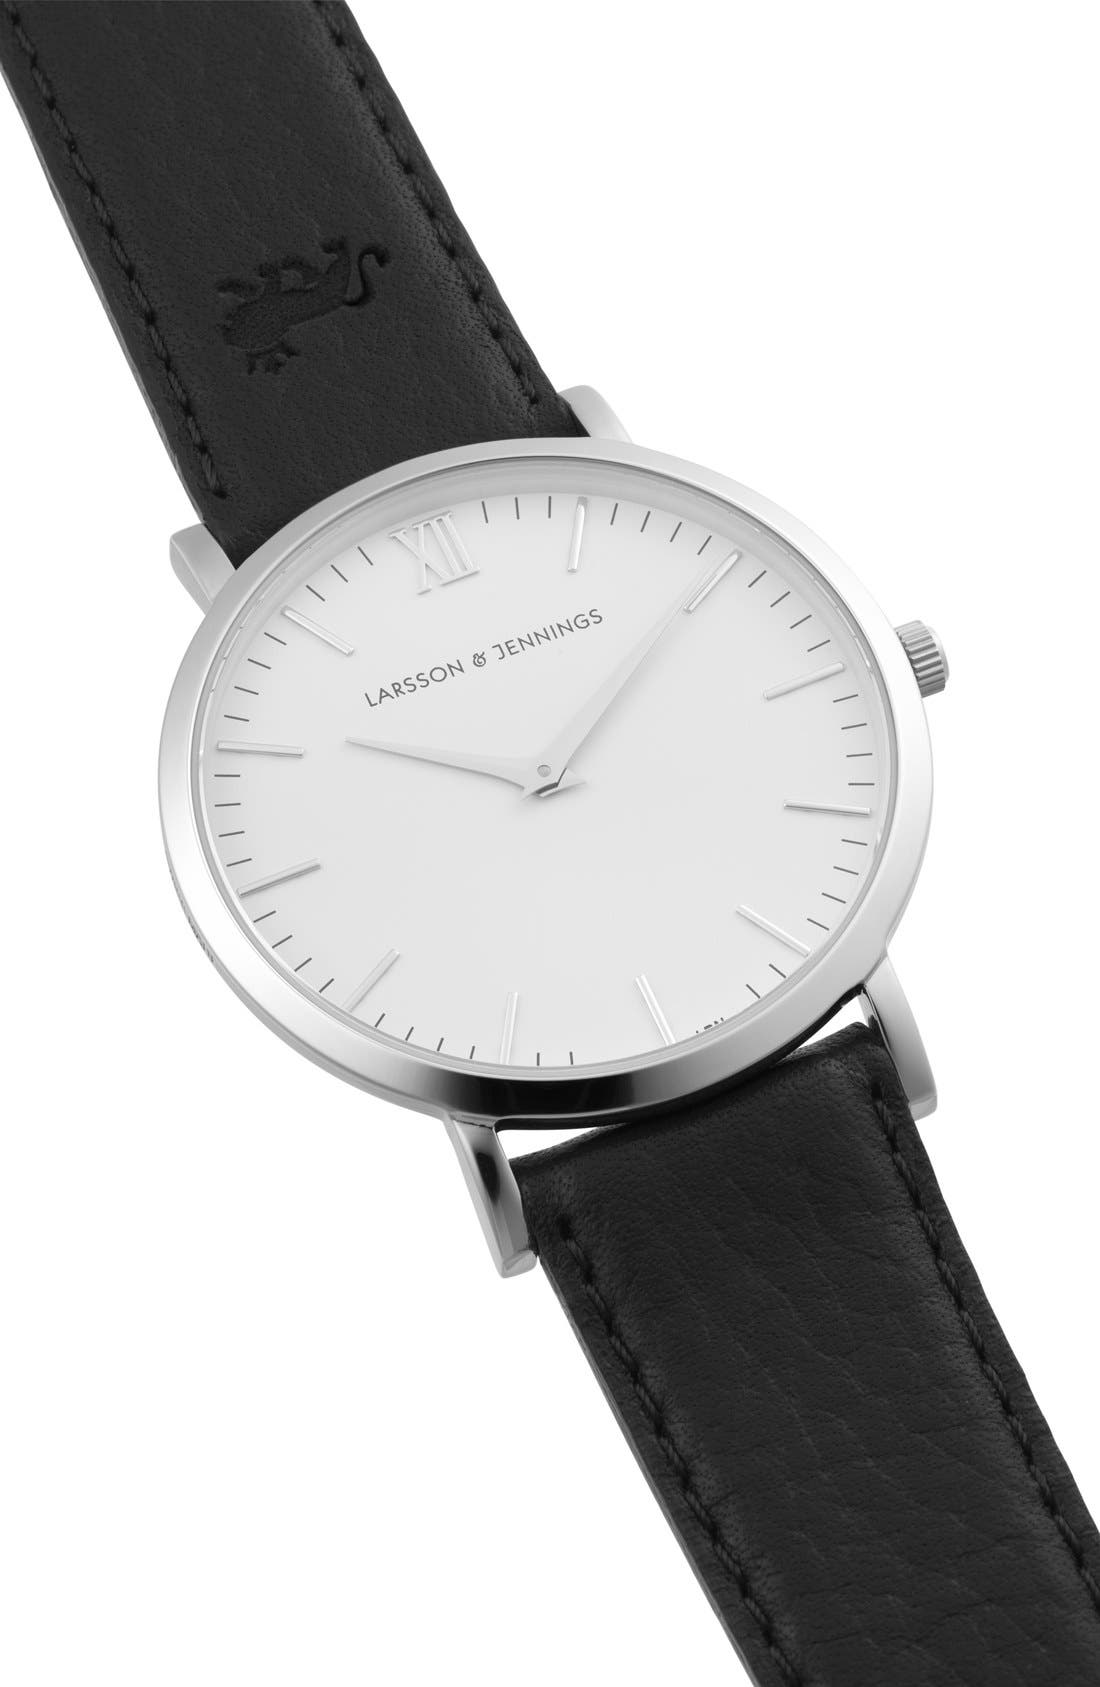 'Lugano' Leather Strap Watch, 40mm,                             Alternate thumbnail 5, color,                             Black/ White